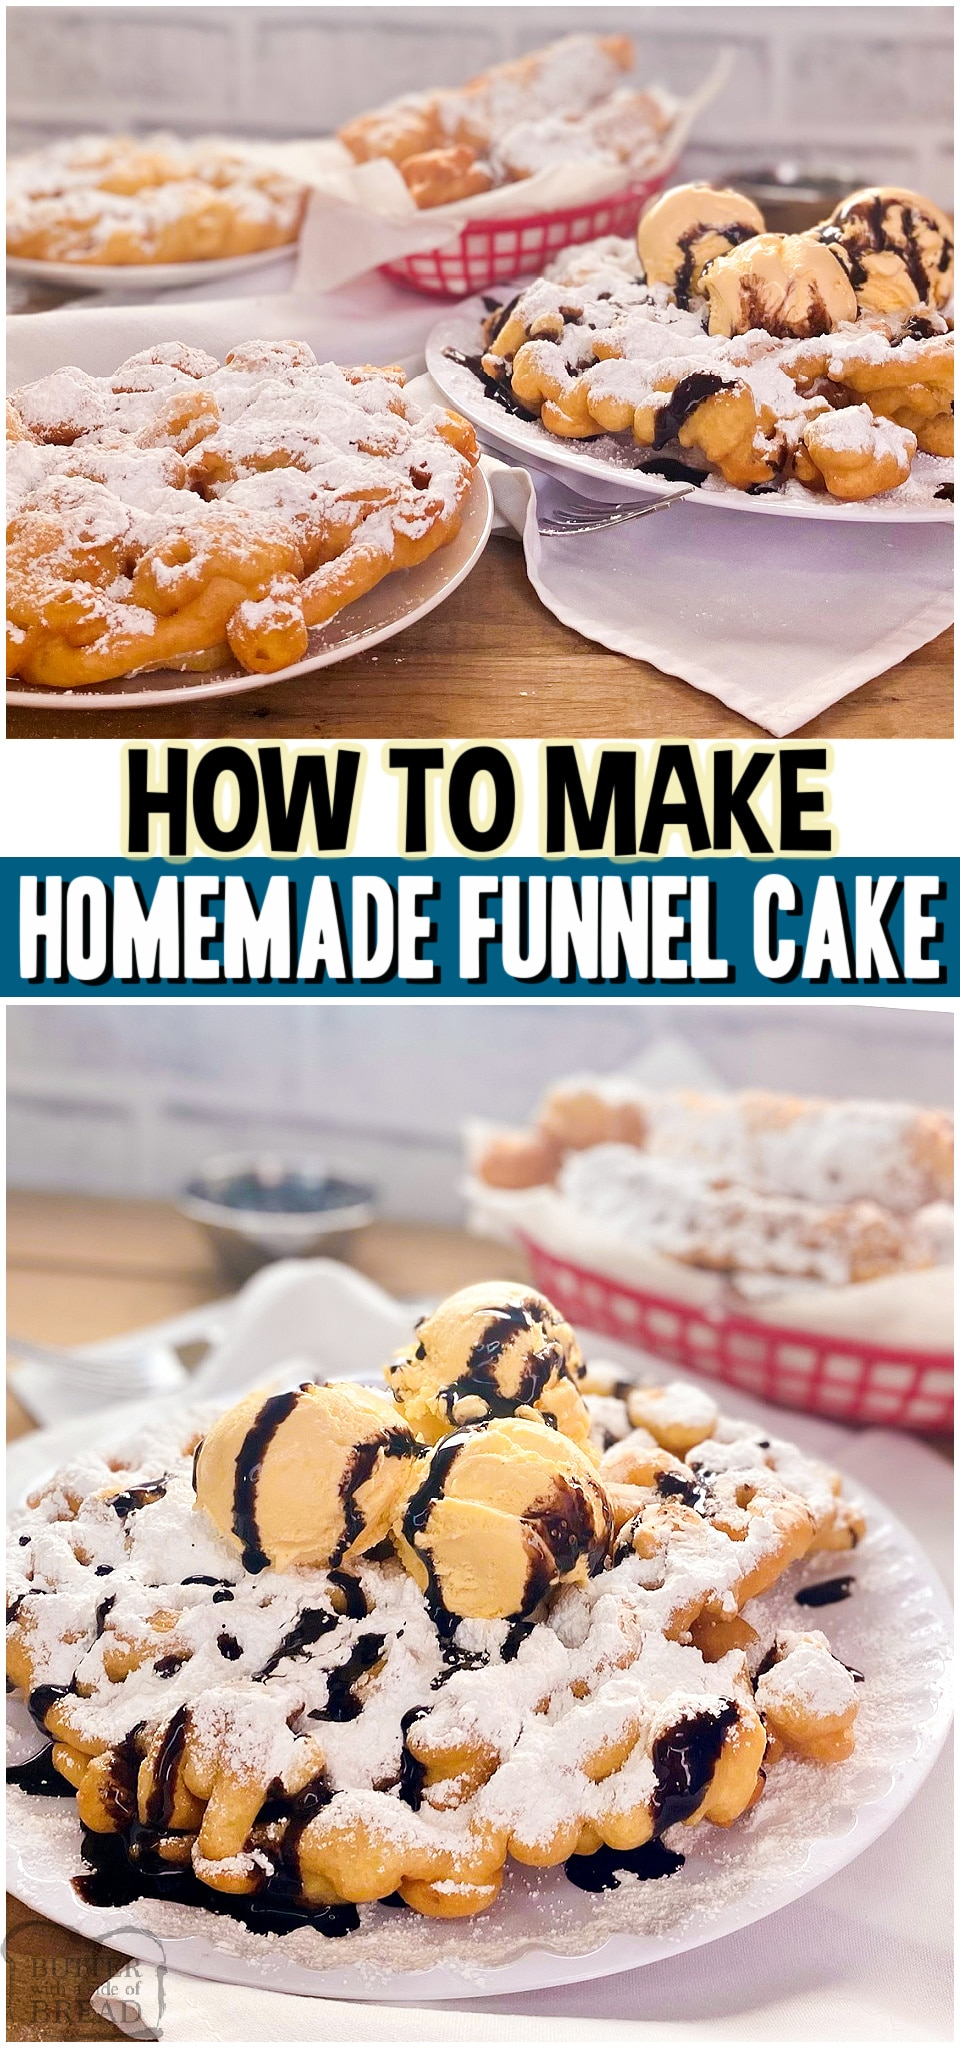 Recipe for How to Make Funnel Cake at home that's simple & delicious! Simple pantry ingredients combine to make these fun homemade funnel cakes. Come see how easy they are to make!#funnelcake #fried #carnival #statefair #funnelcakes #dessert #easyrecipe from BUTTER WITH A SIDE OF BREAD